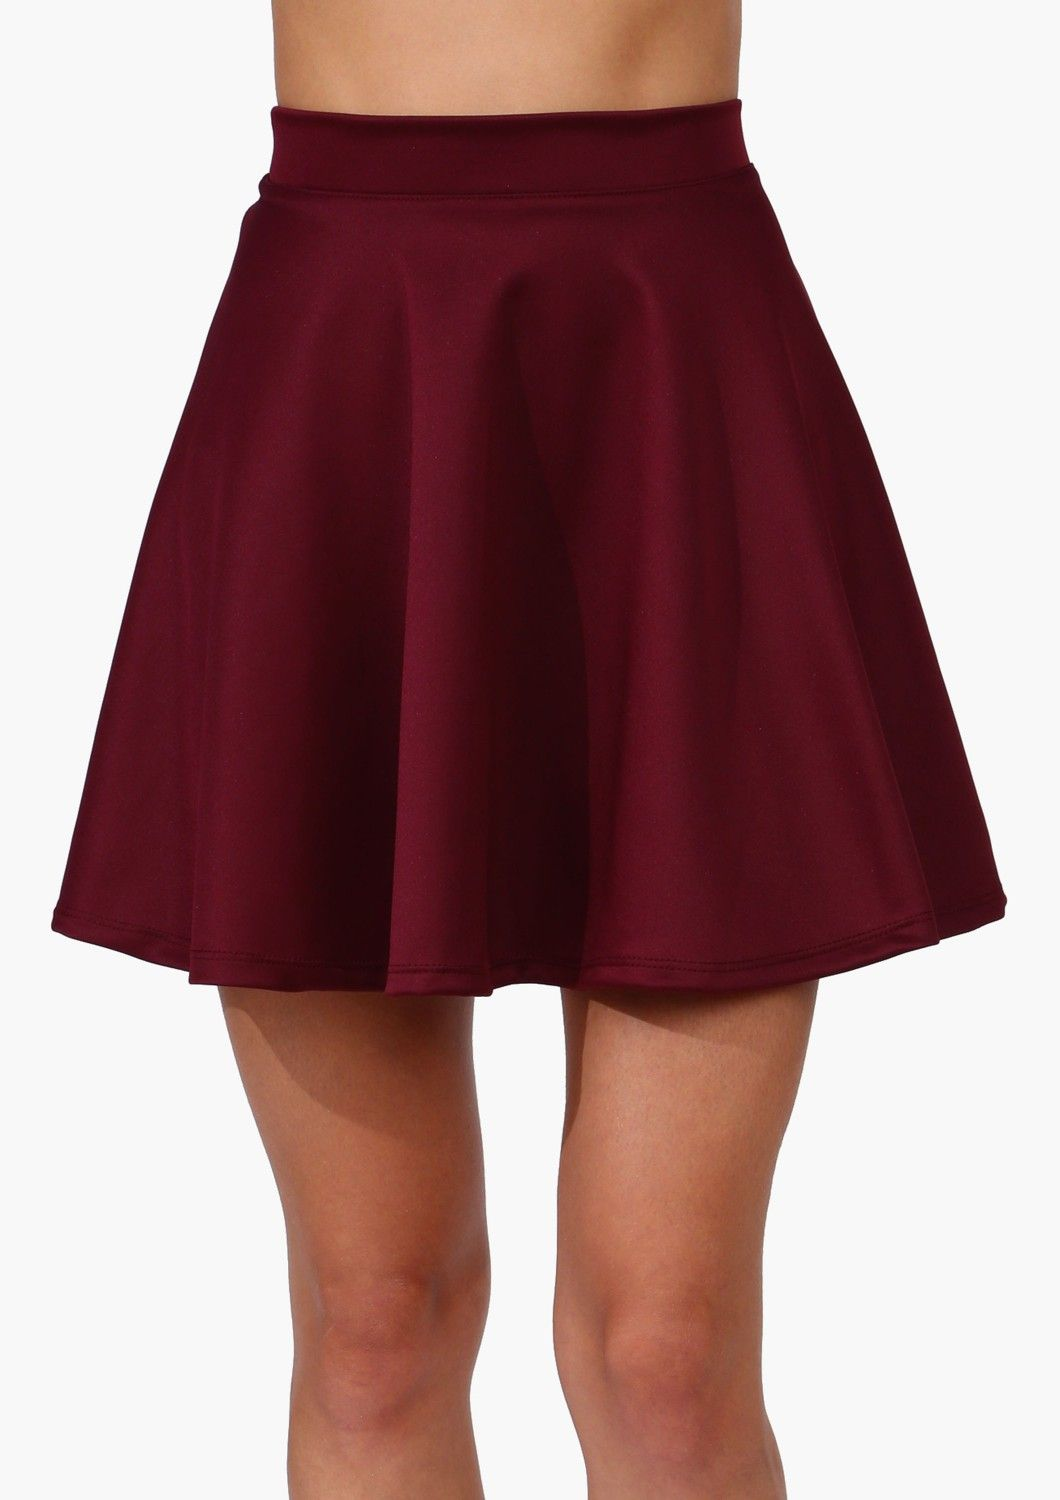 9698f84dc5 Burgundy skater skirt | style | Red skater skirt, Fashion, Burgundy ...